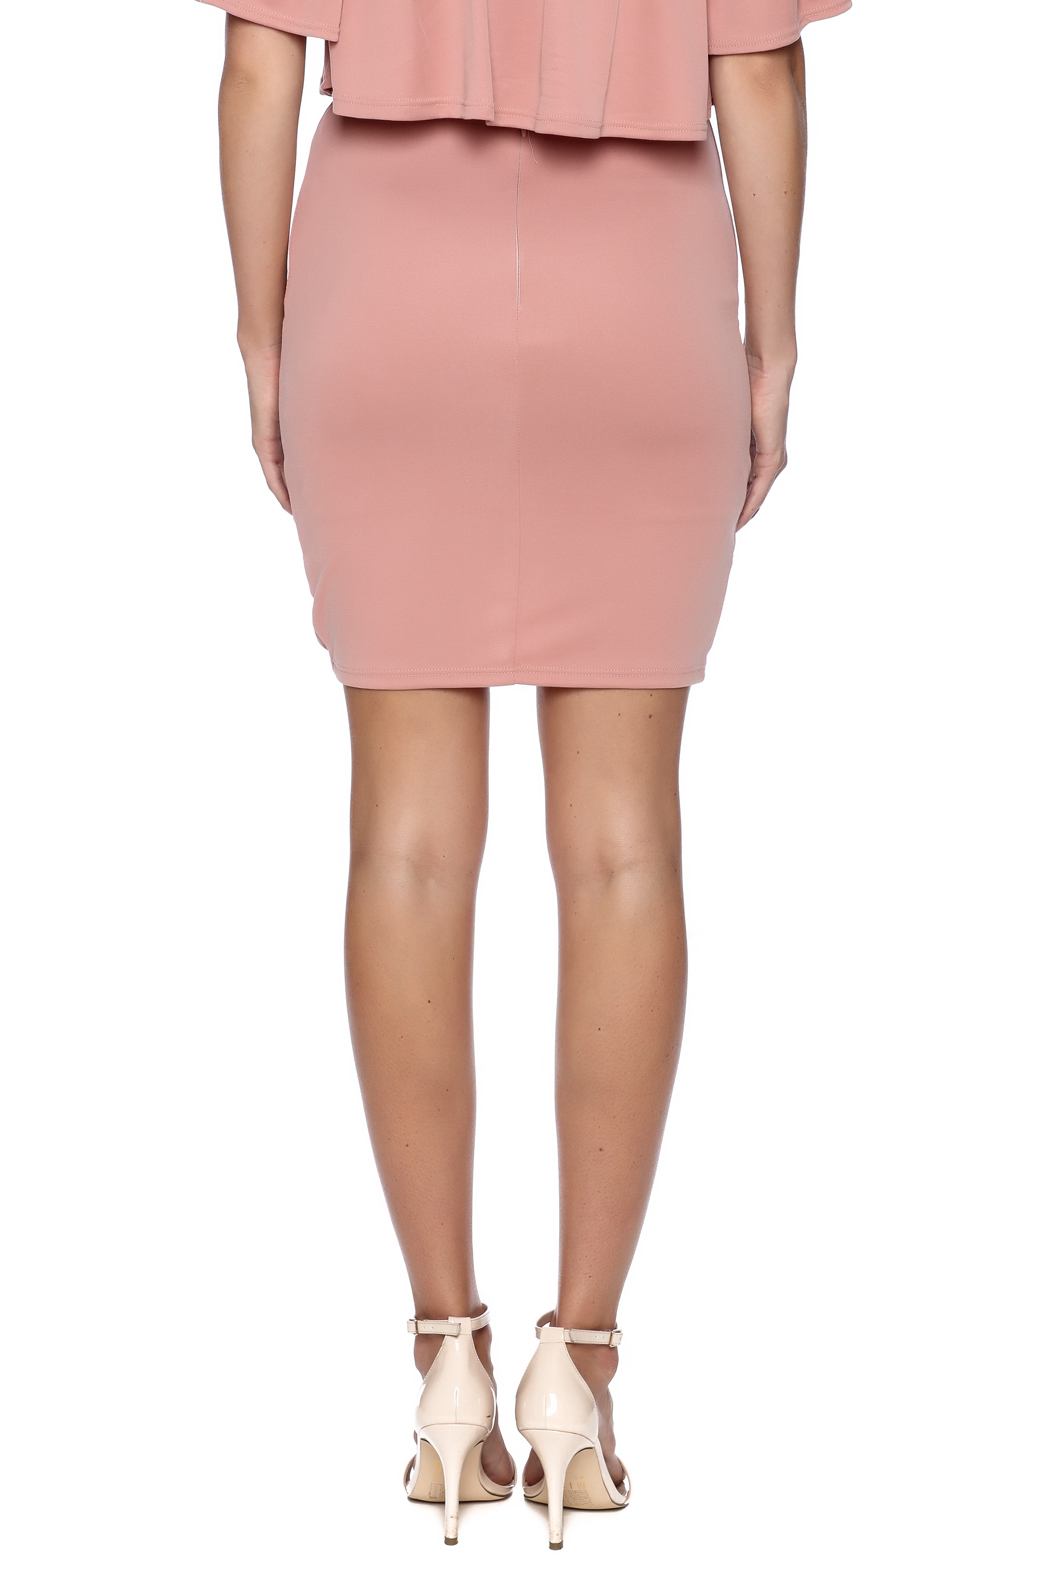 BLANC Blush Mini Skirt from Manhattan by Dor L'Dor — Shoptiques